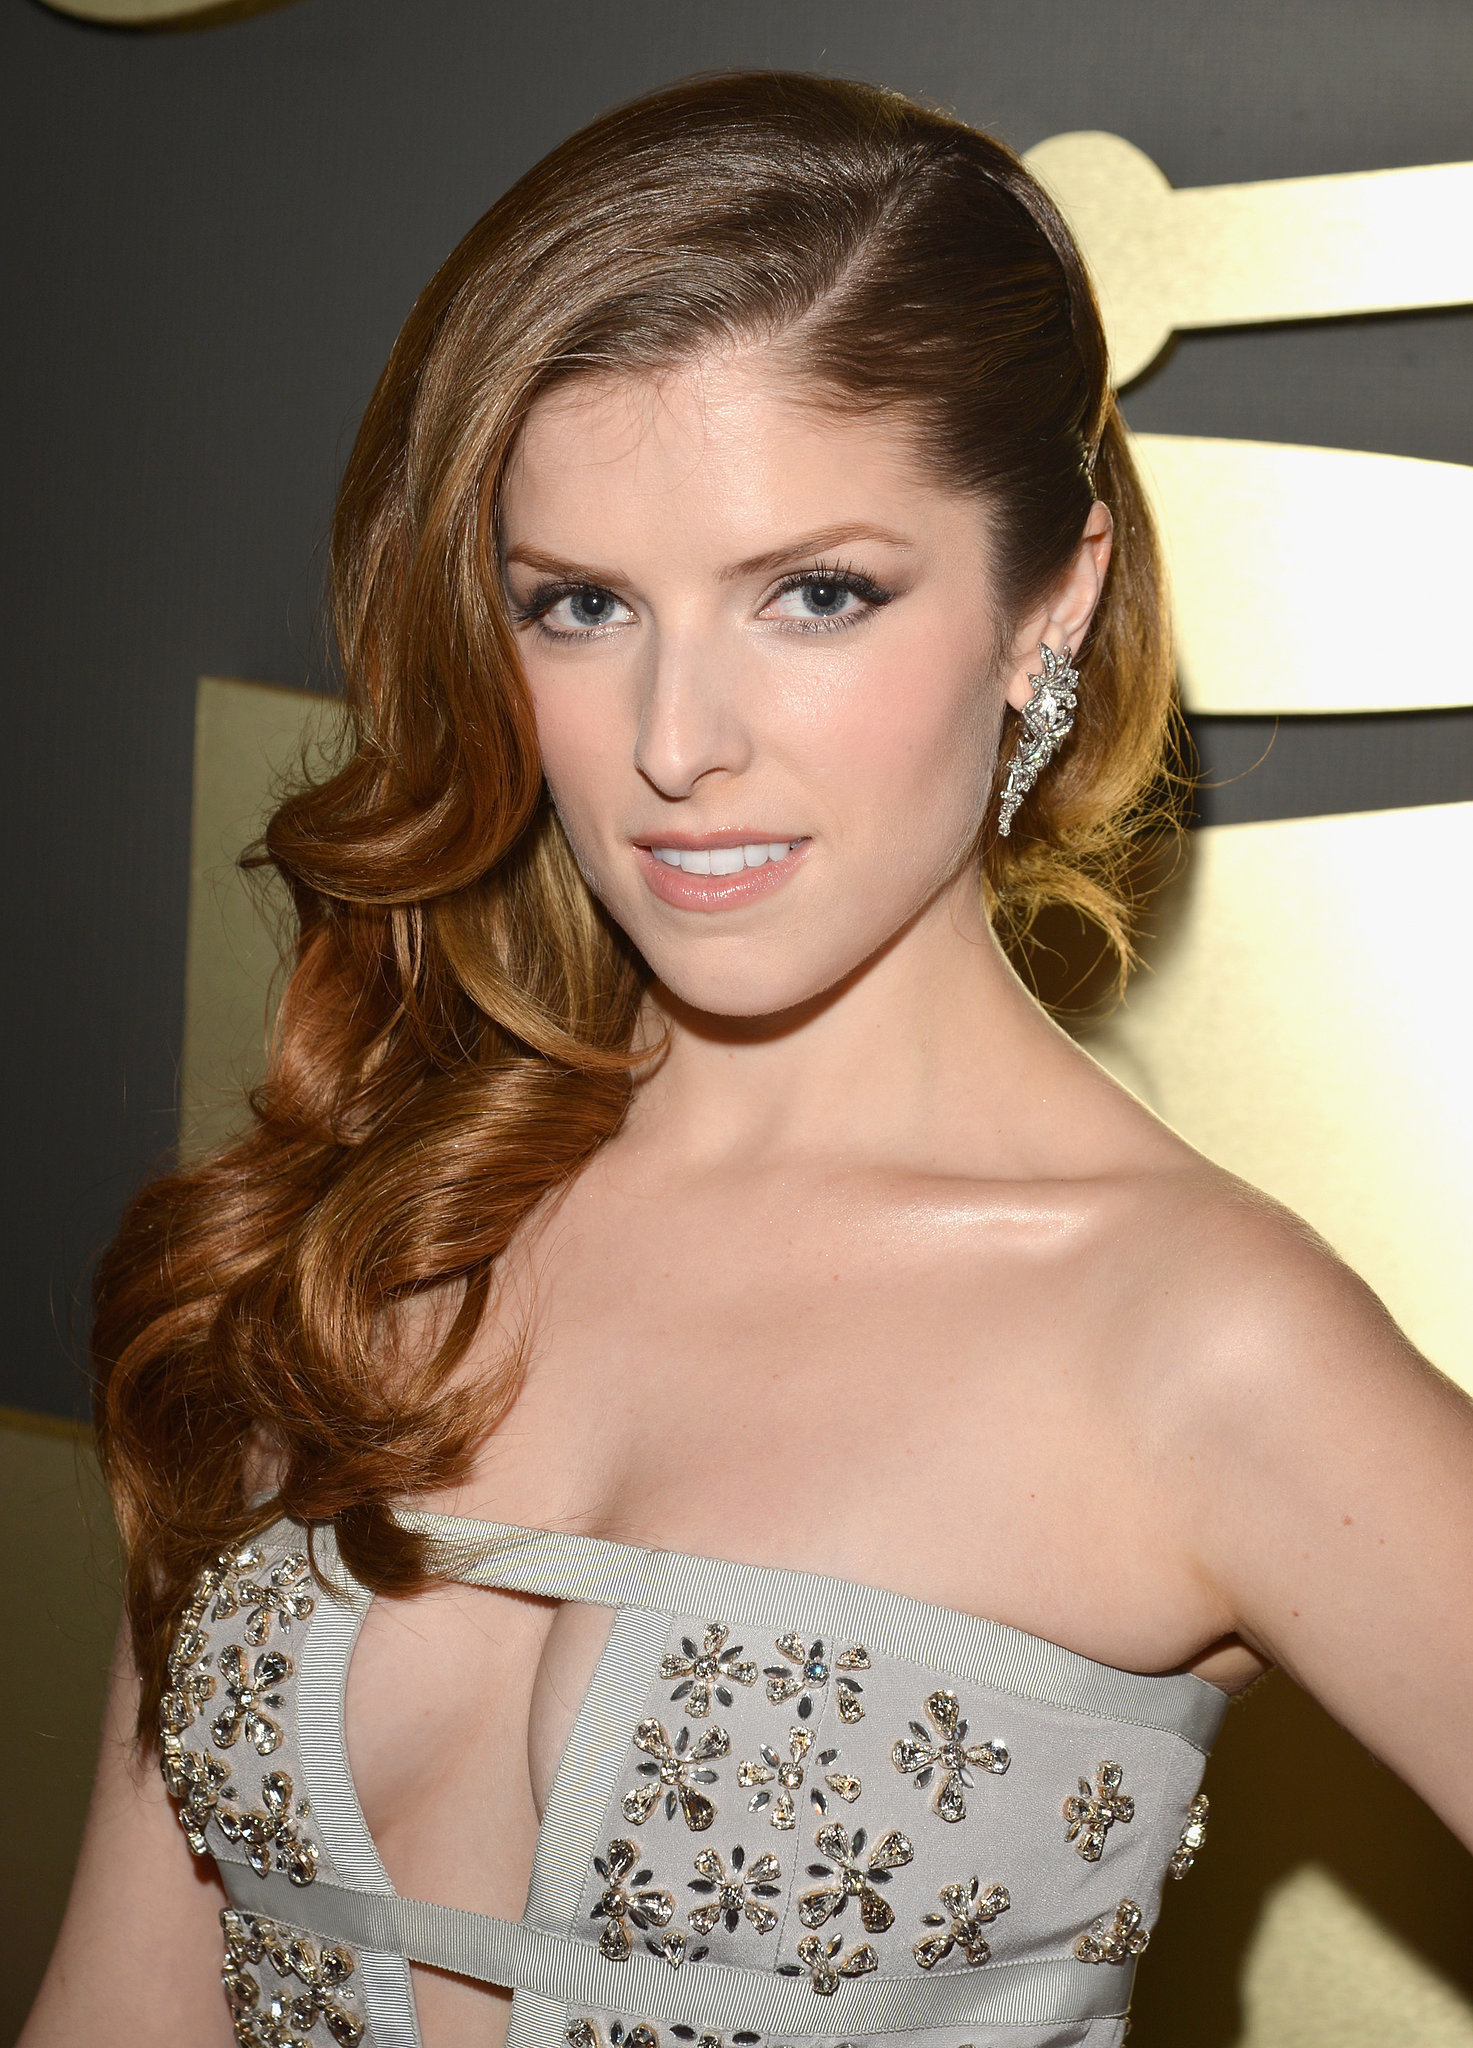 Anna Kendrick Iphone Images